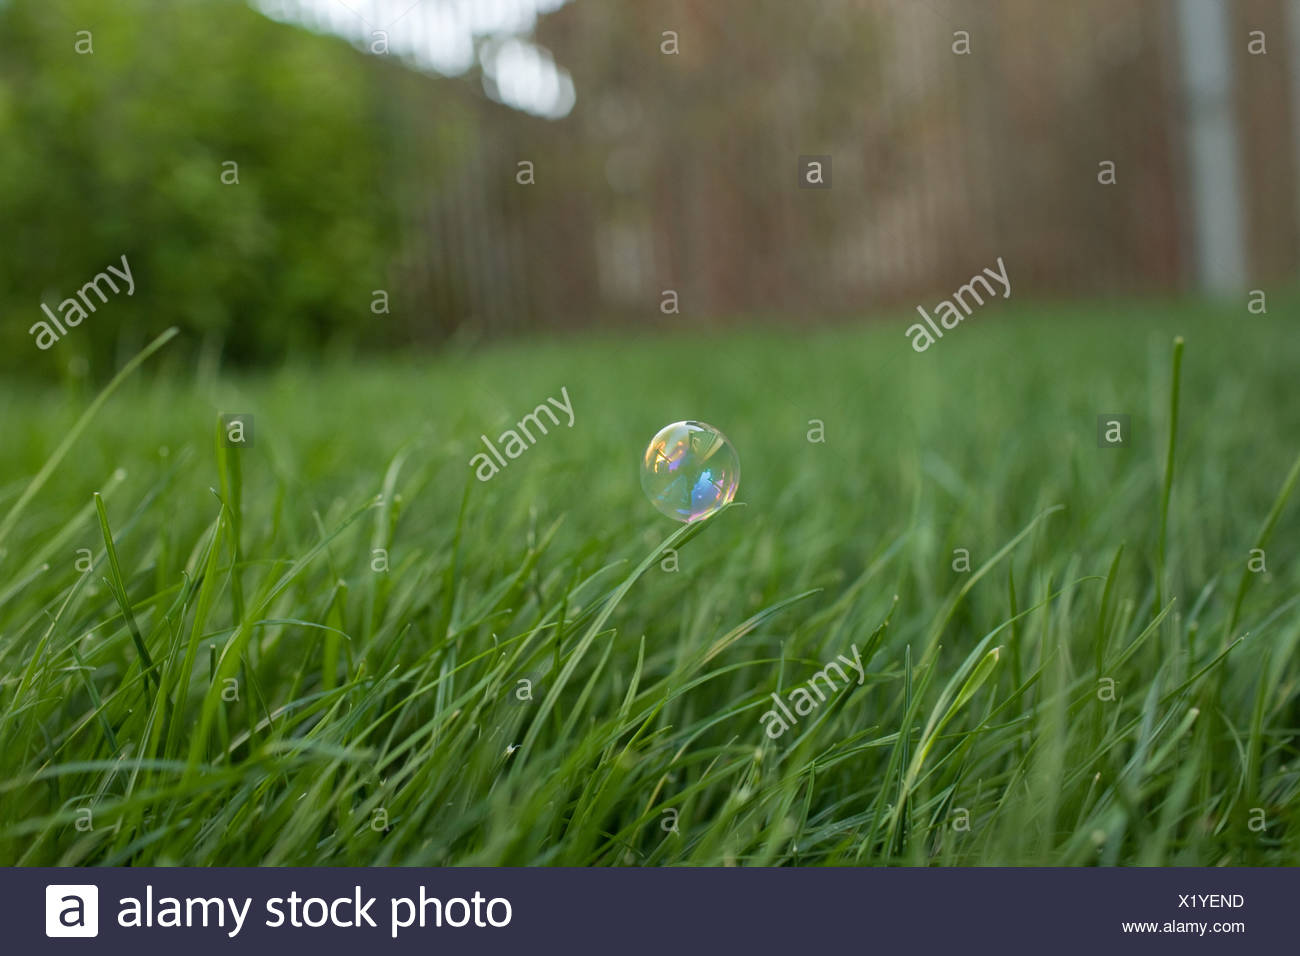 Bubble on grass - Stock Image